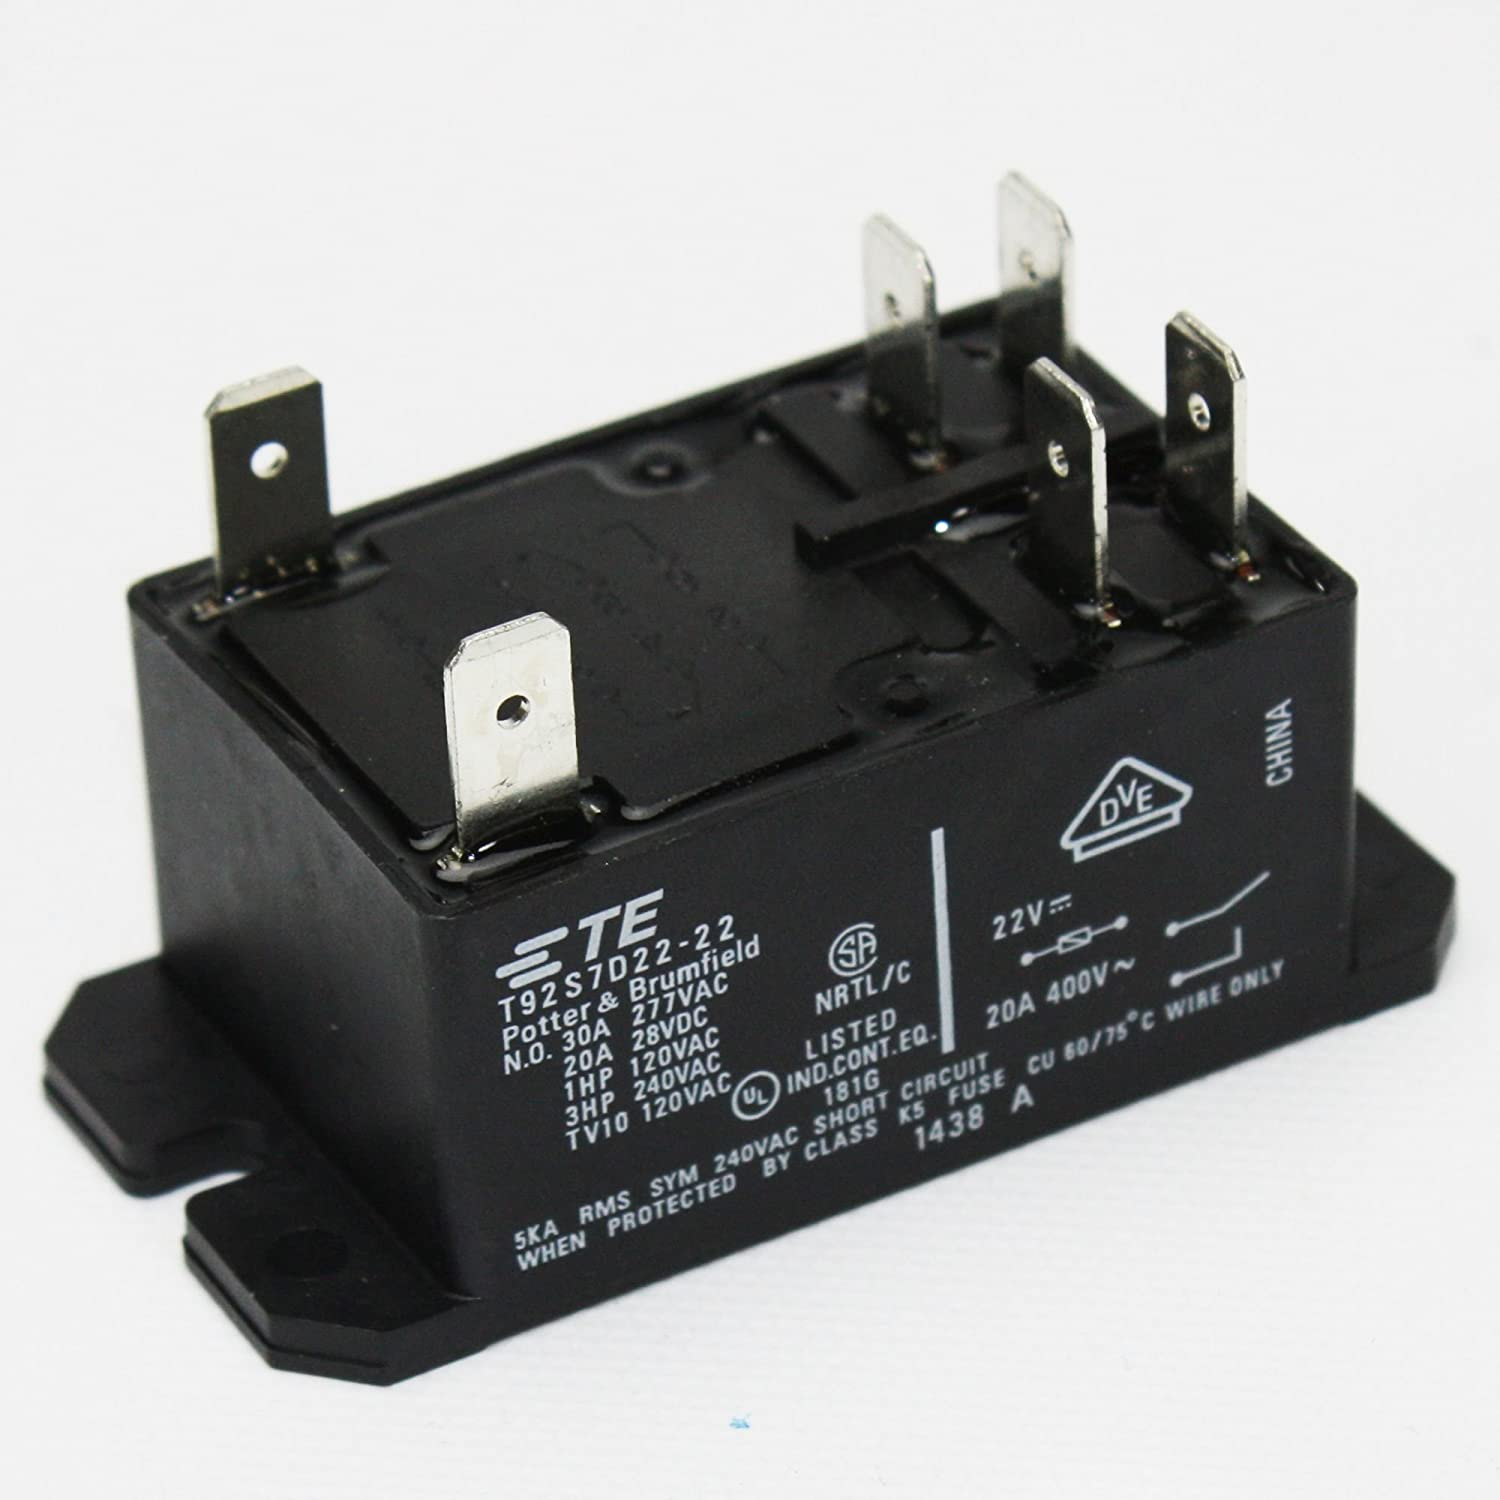 Hn61pc002 Carrier Oem Replacement Furnace Relay Hvac Controls Potter Brumfield Wiring Diagrams Industrial Scientific